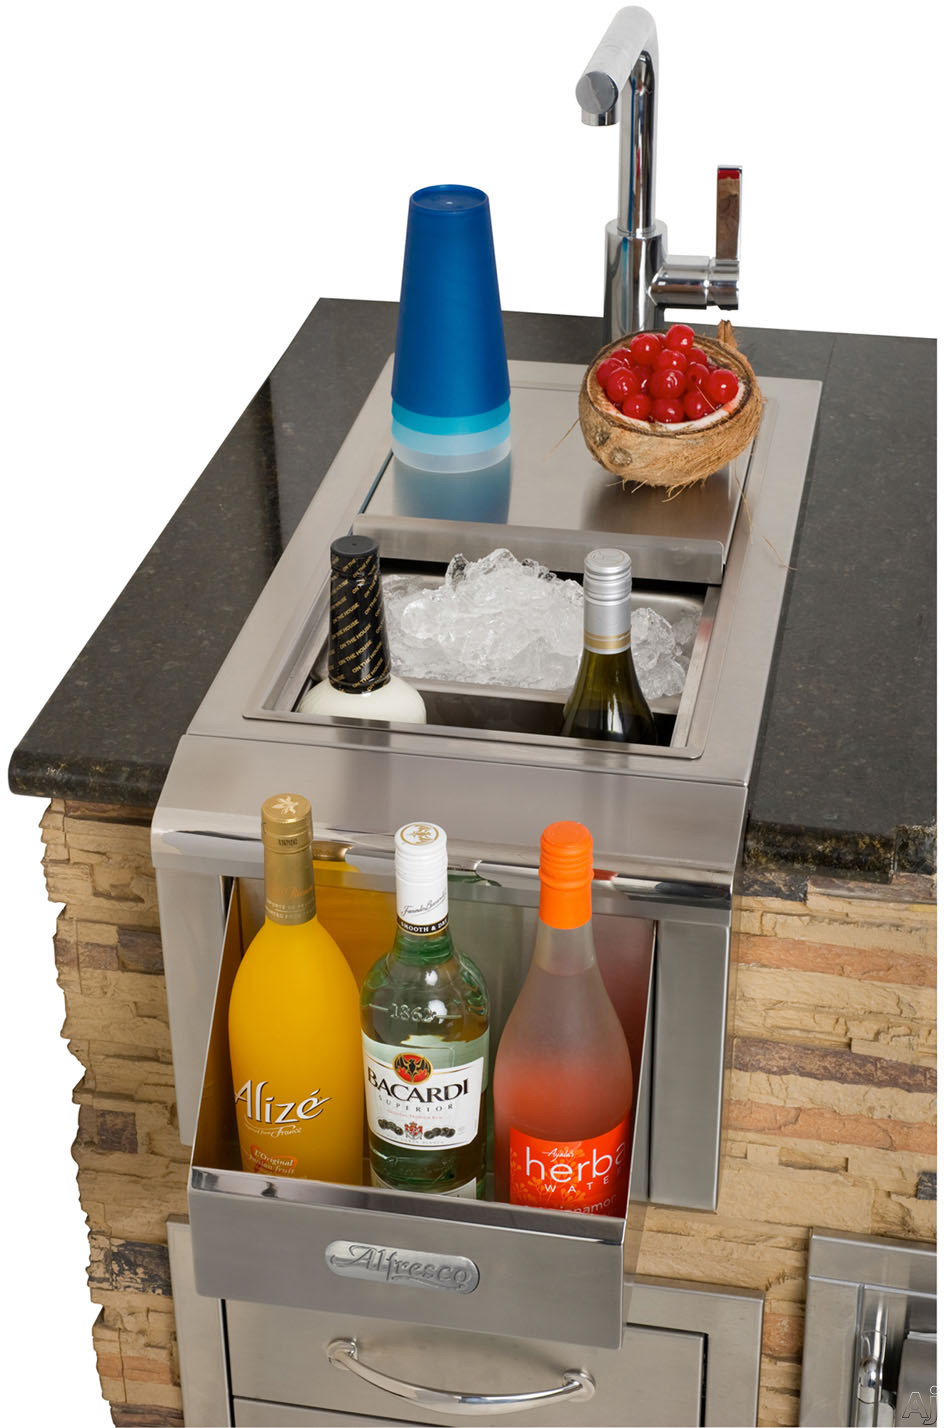 Alfresco ADT14 14 Inch Built in Beverage Center with Sink Insulated Ice Compartment Front Speedrail and Stainless Steel Construction